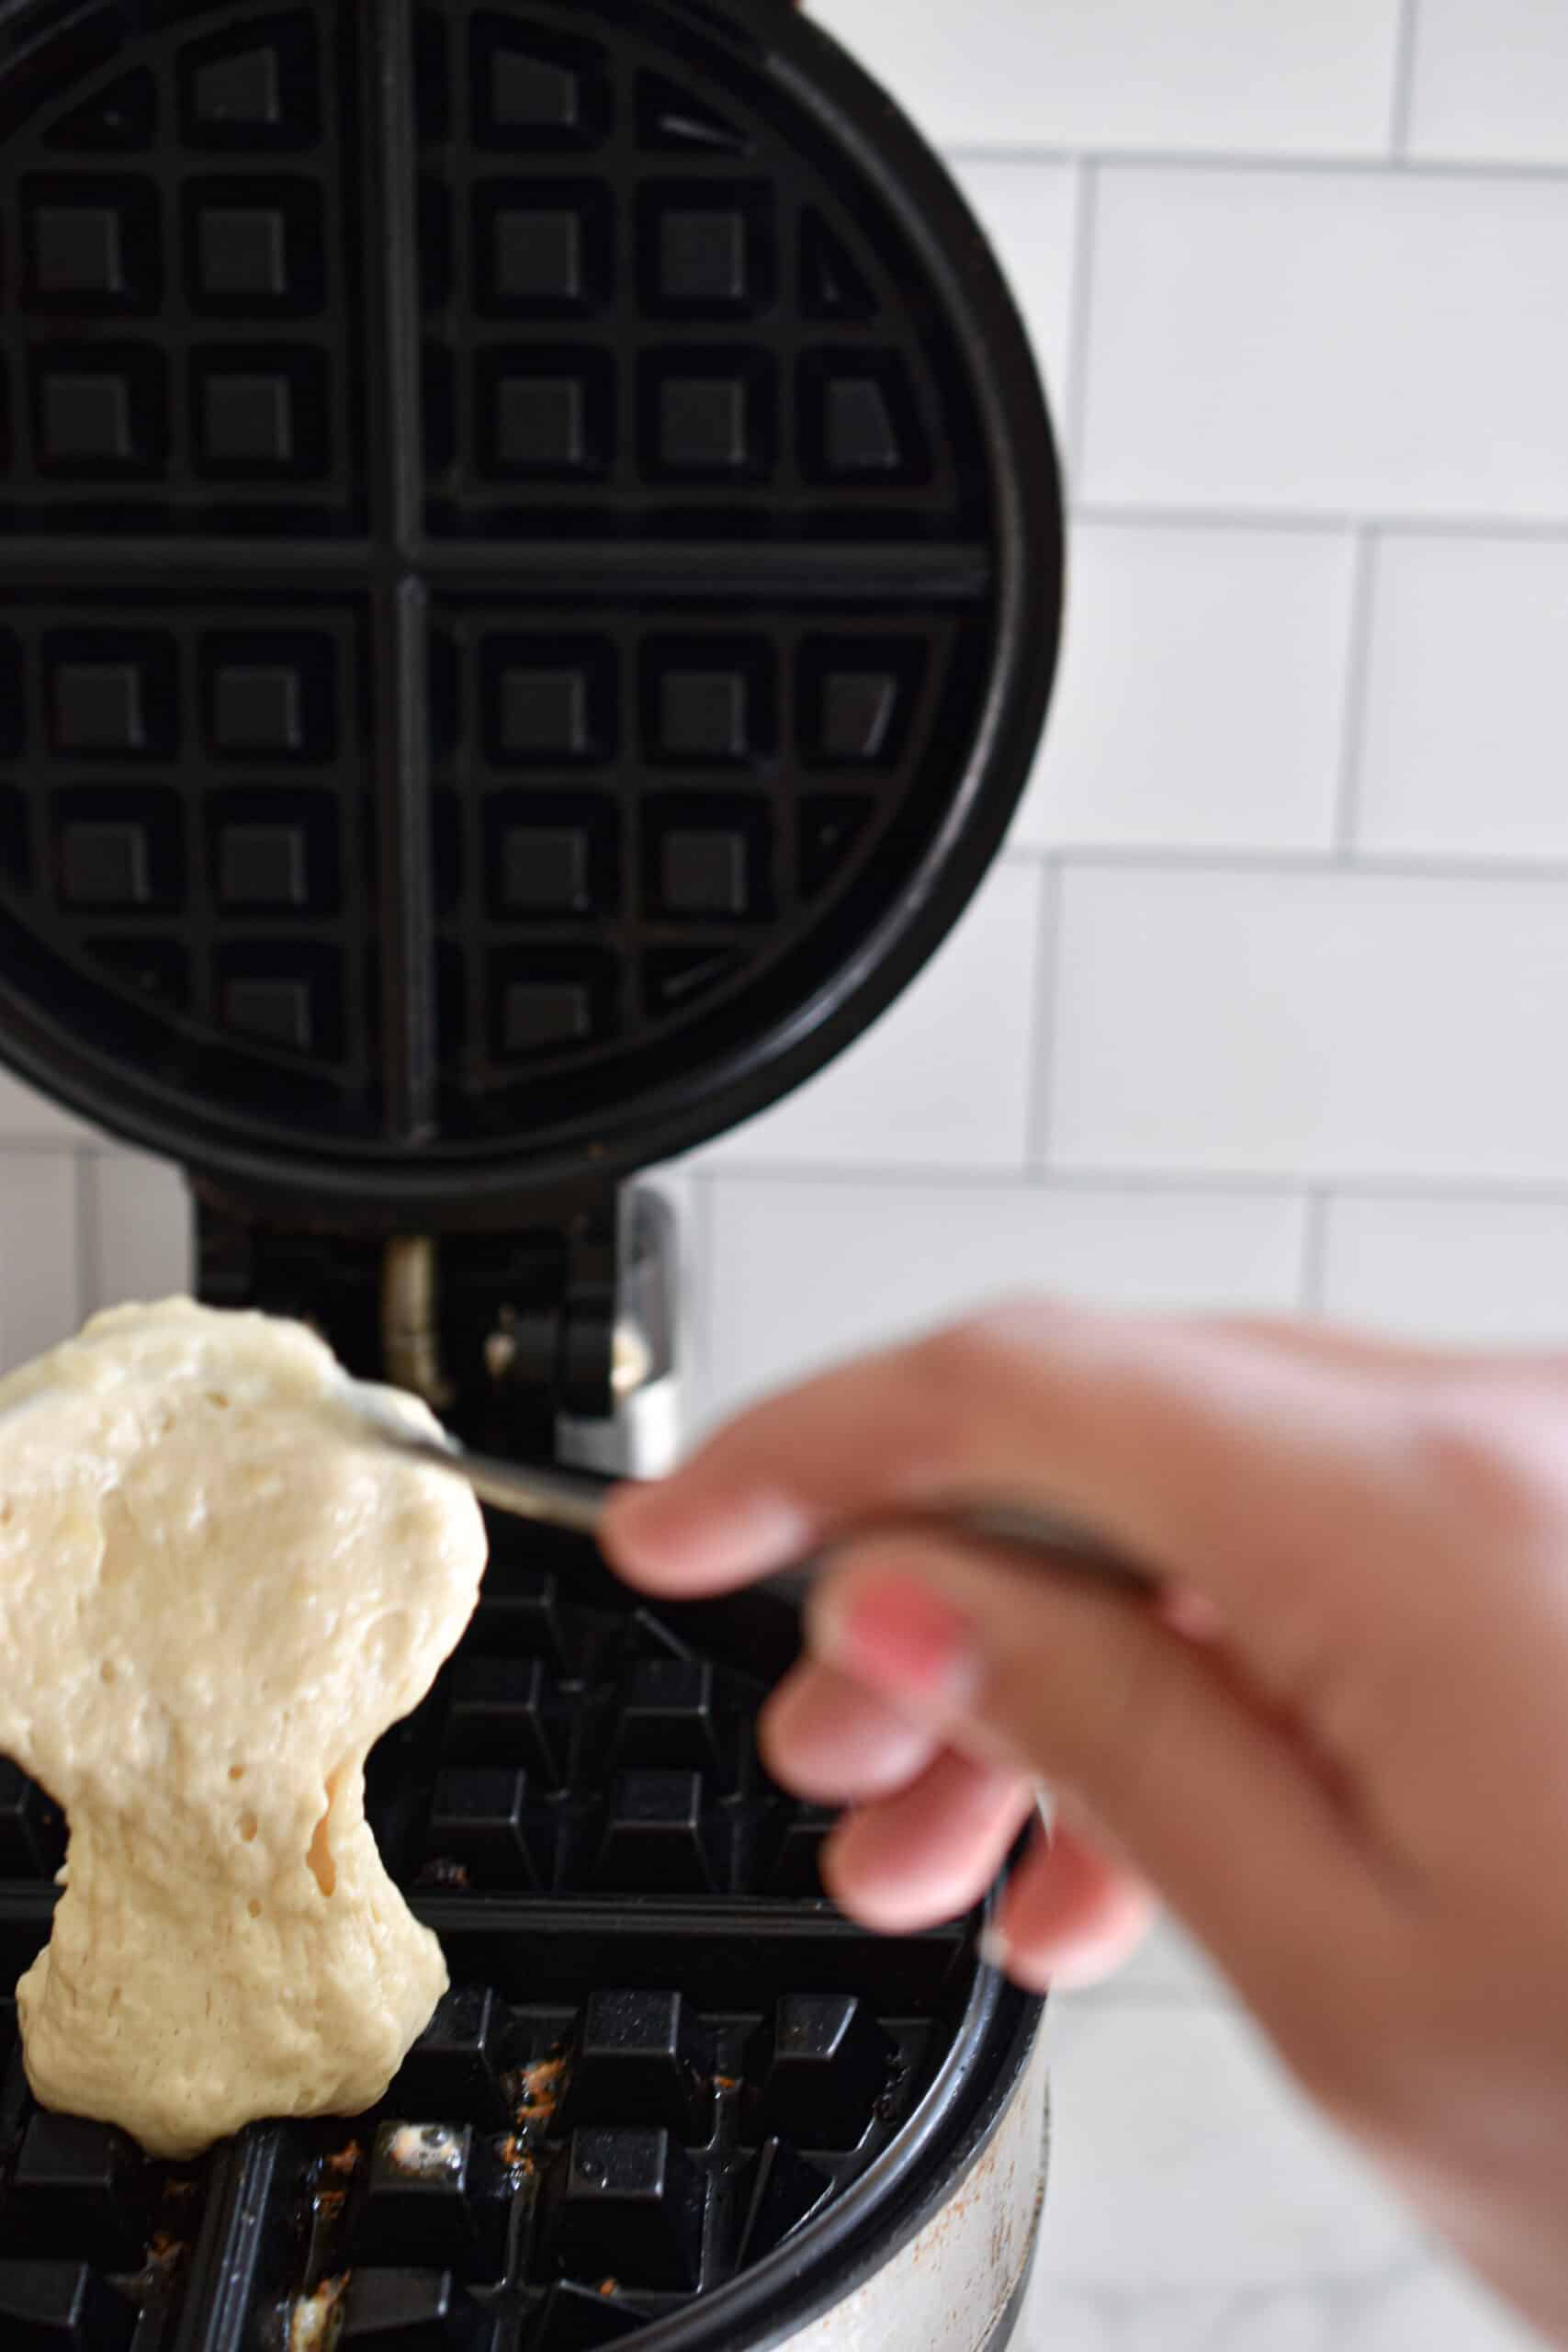 Add the batter to the waffle iron